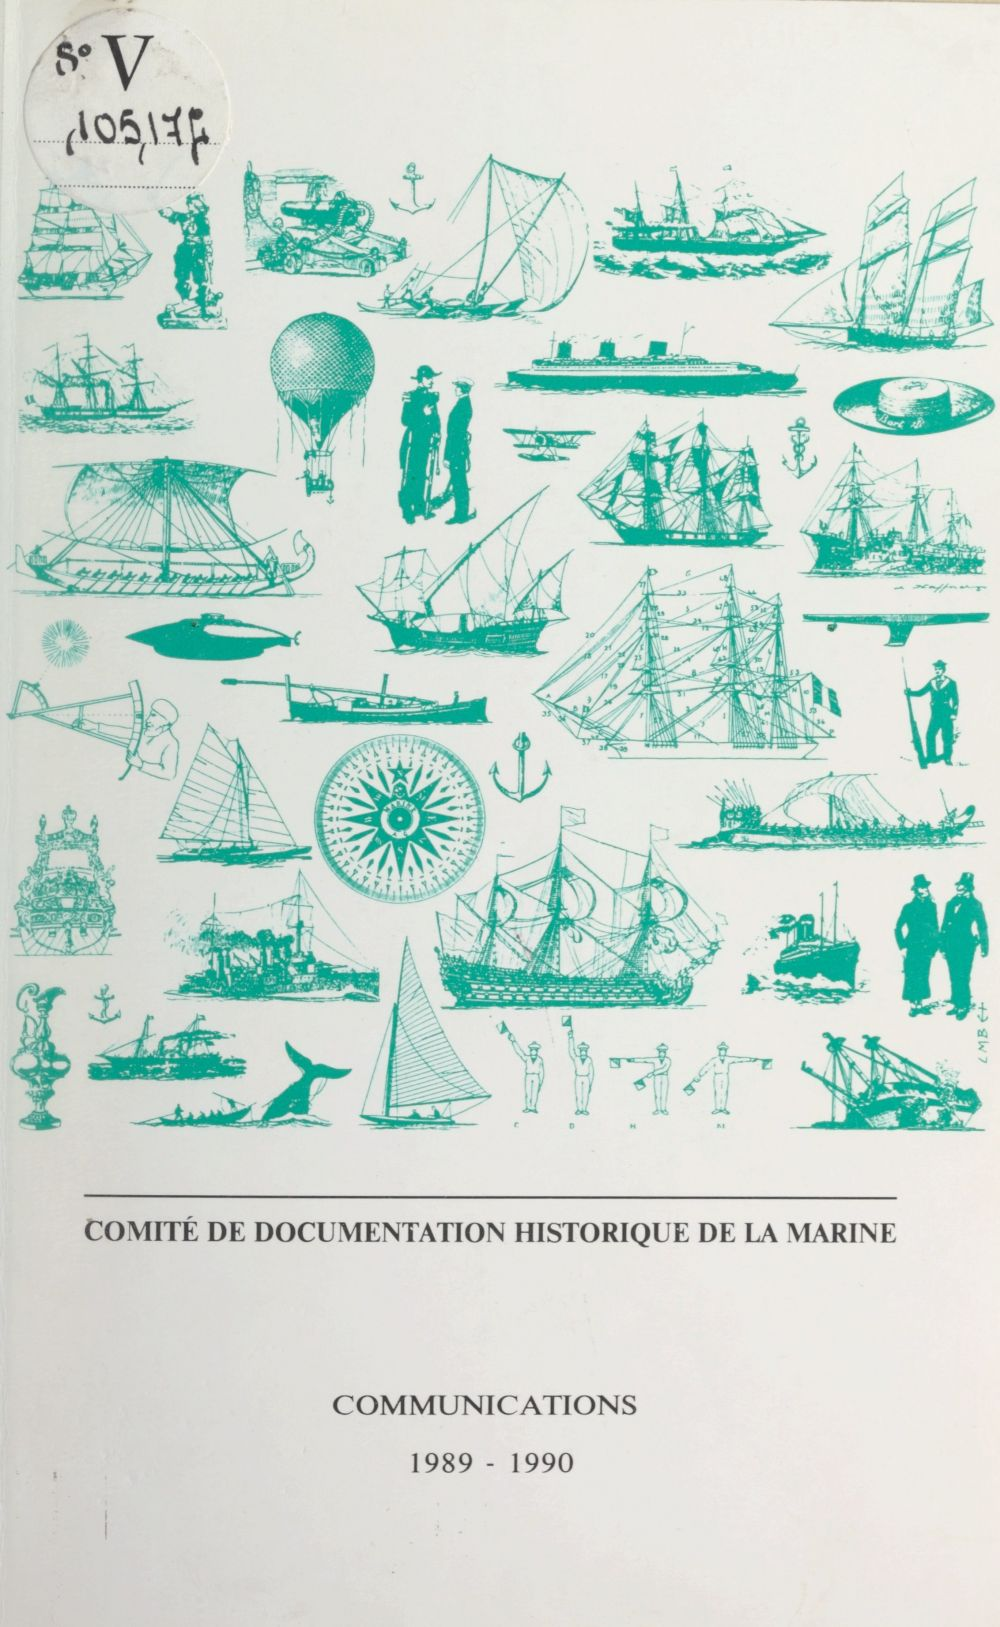 Comité de documentation historique de la marine. Communications 1989-1990